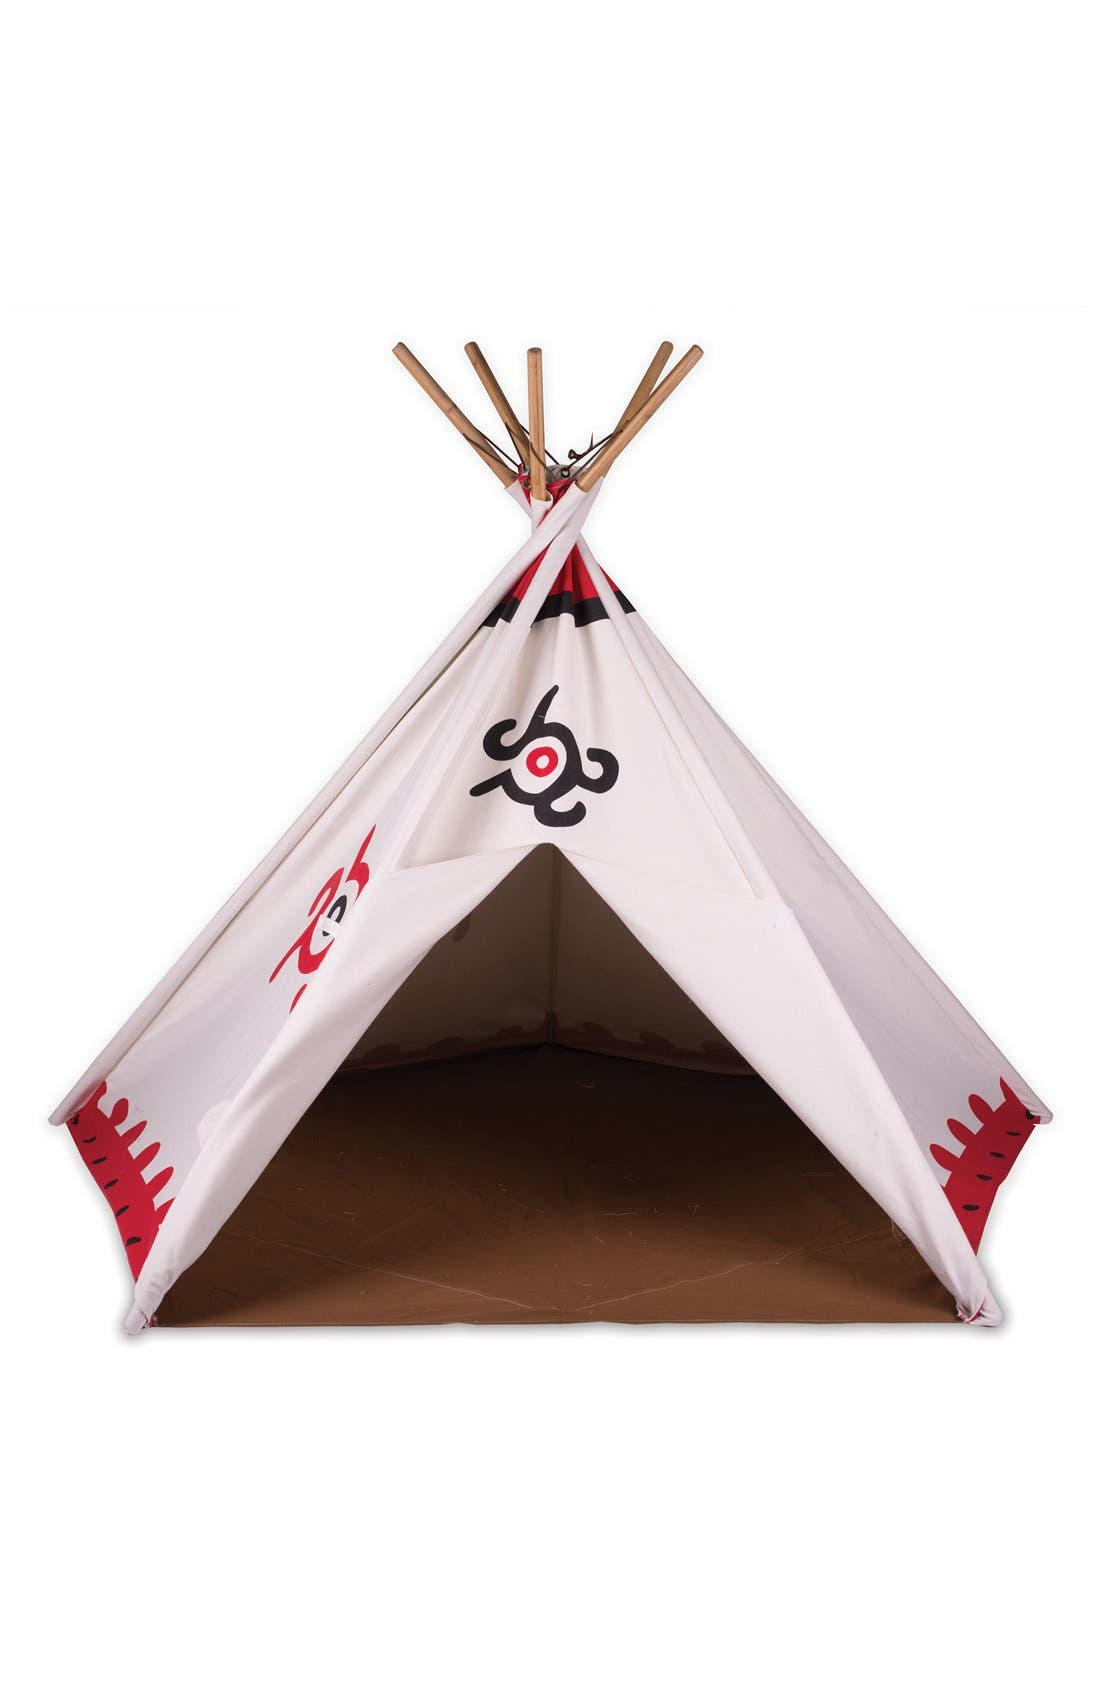 Cotton Canvas Teepee,                             Main thumbnail 1, color,                             WHITE/ RED